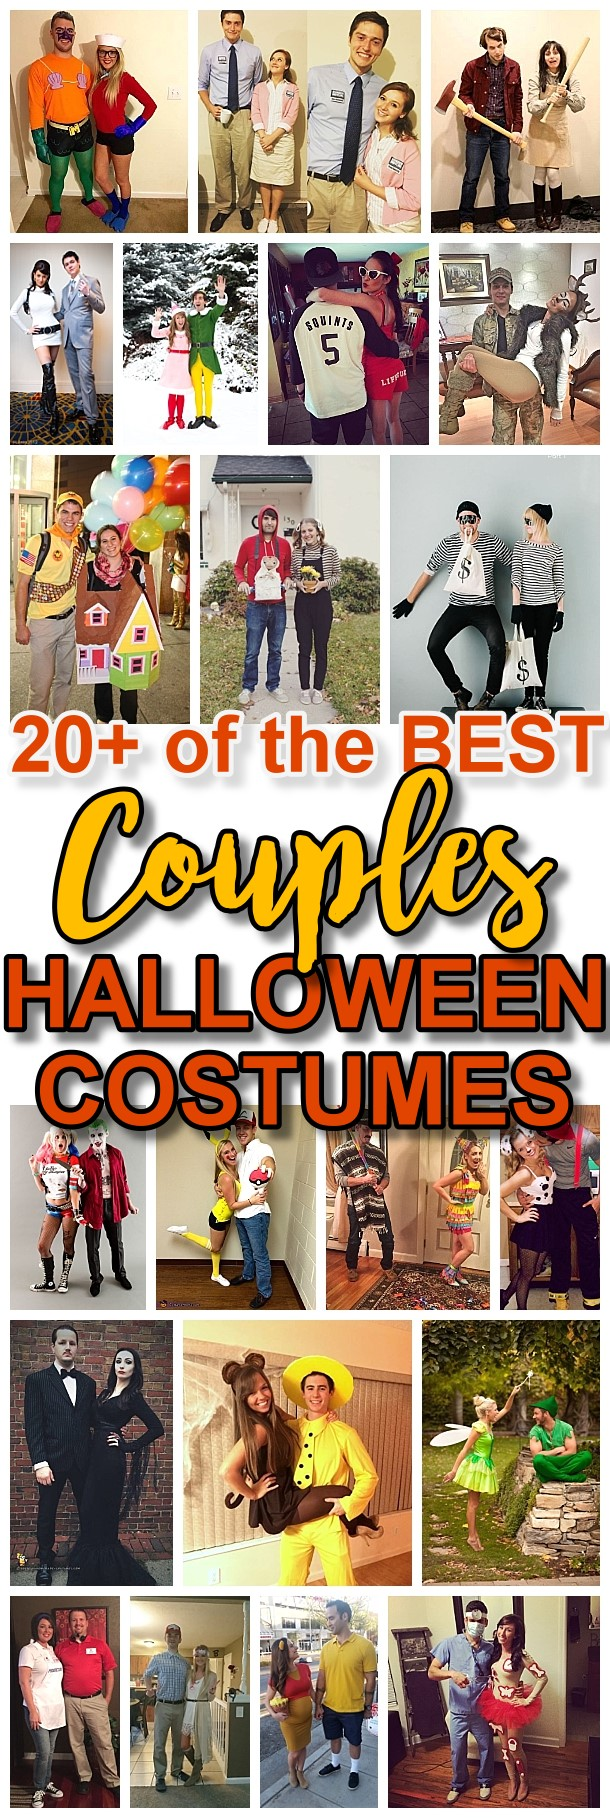 DIY Couples Halloween Costume Ideas - Do it Yourself Homemade Couples Costume Ideas that are SO FUN to make and are sure to be a big hit at Halloween Parties